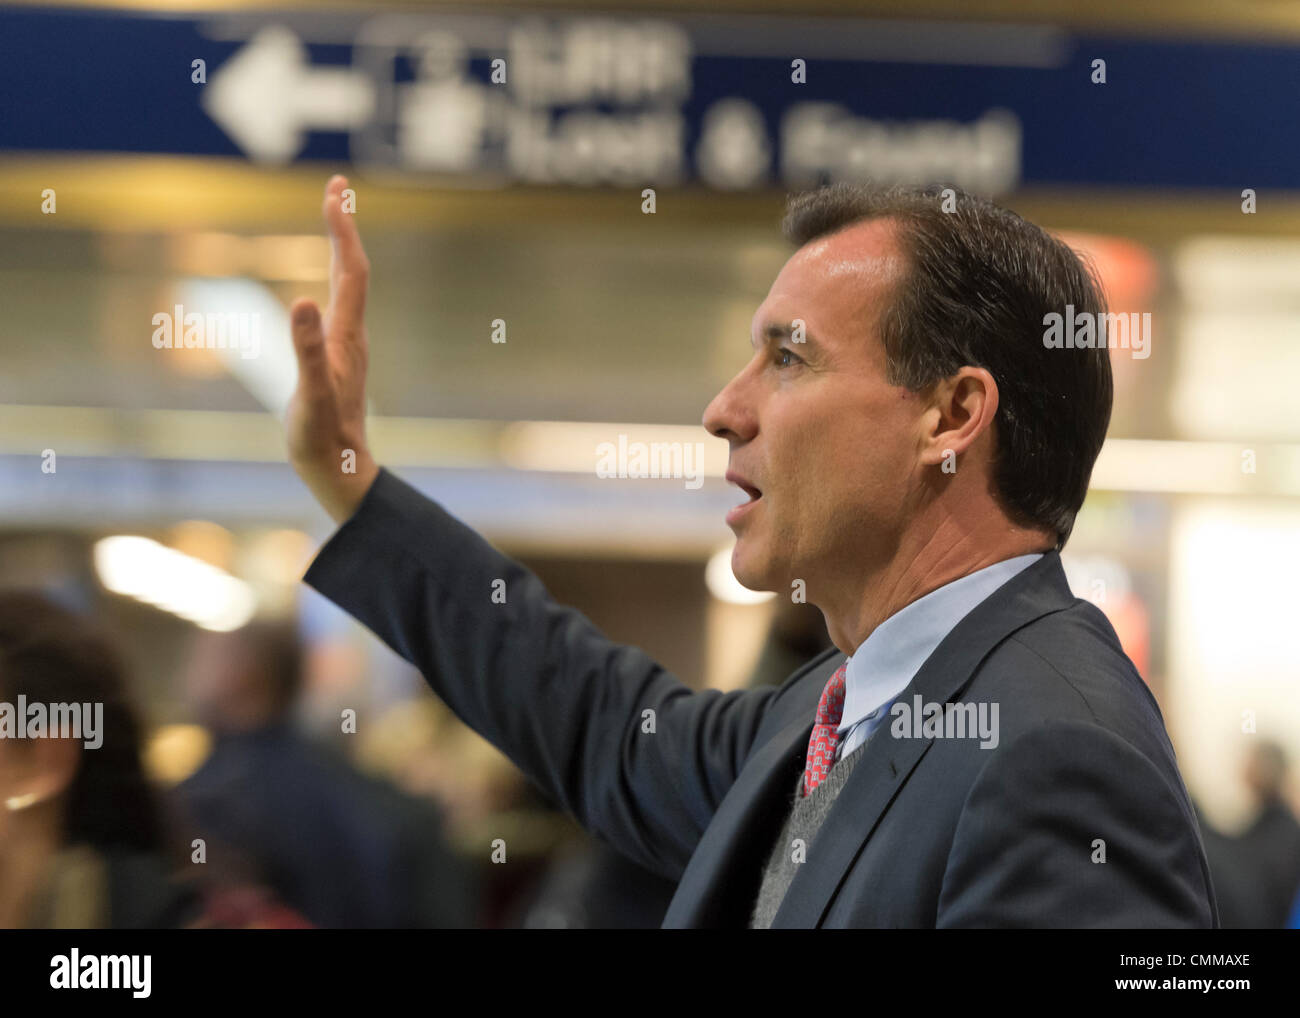 Manhattan, New York, U.S. 4th November 2013. TOM SUOZZI, Democratic candidate for Nassau County Executive, waves Stock Photo